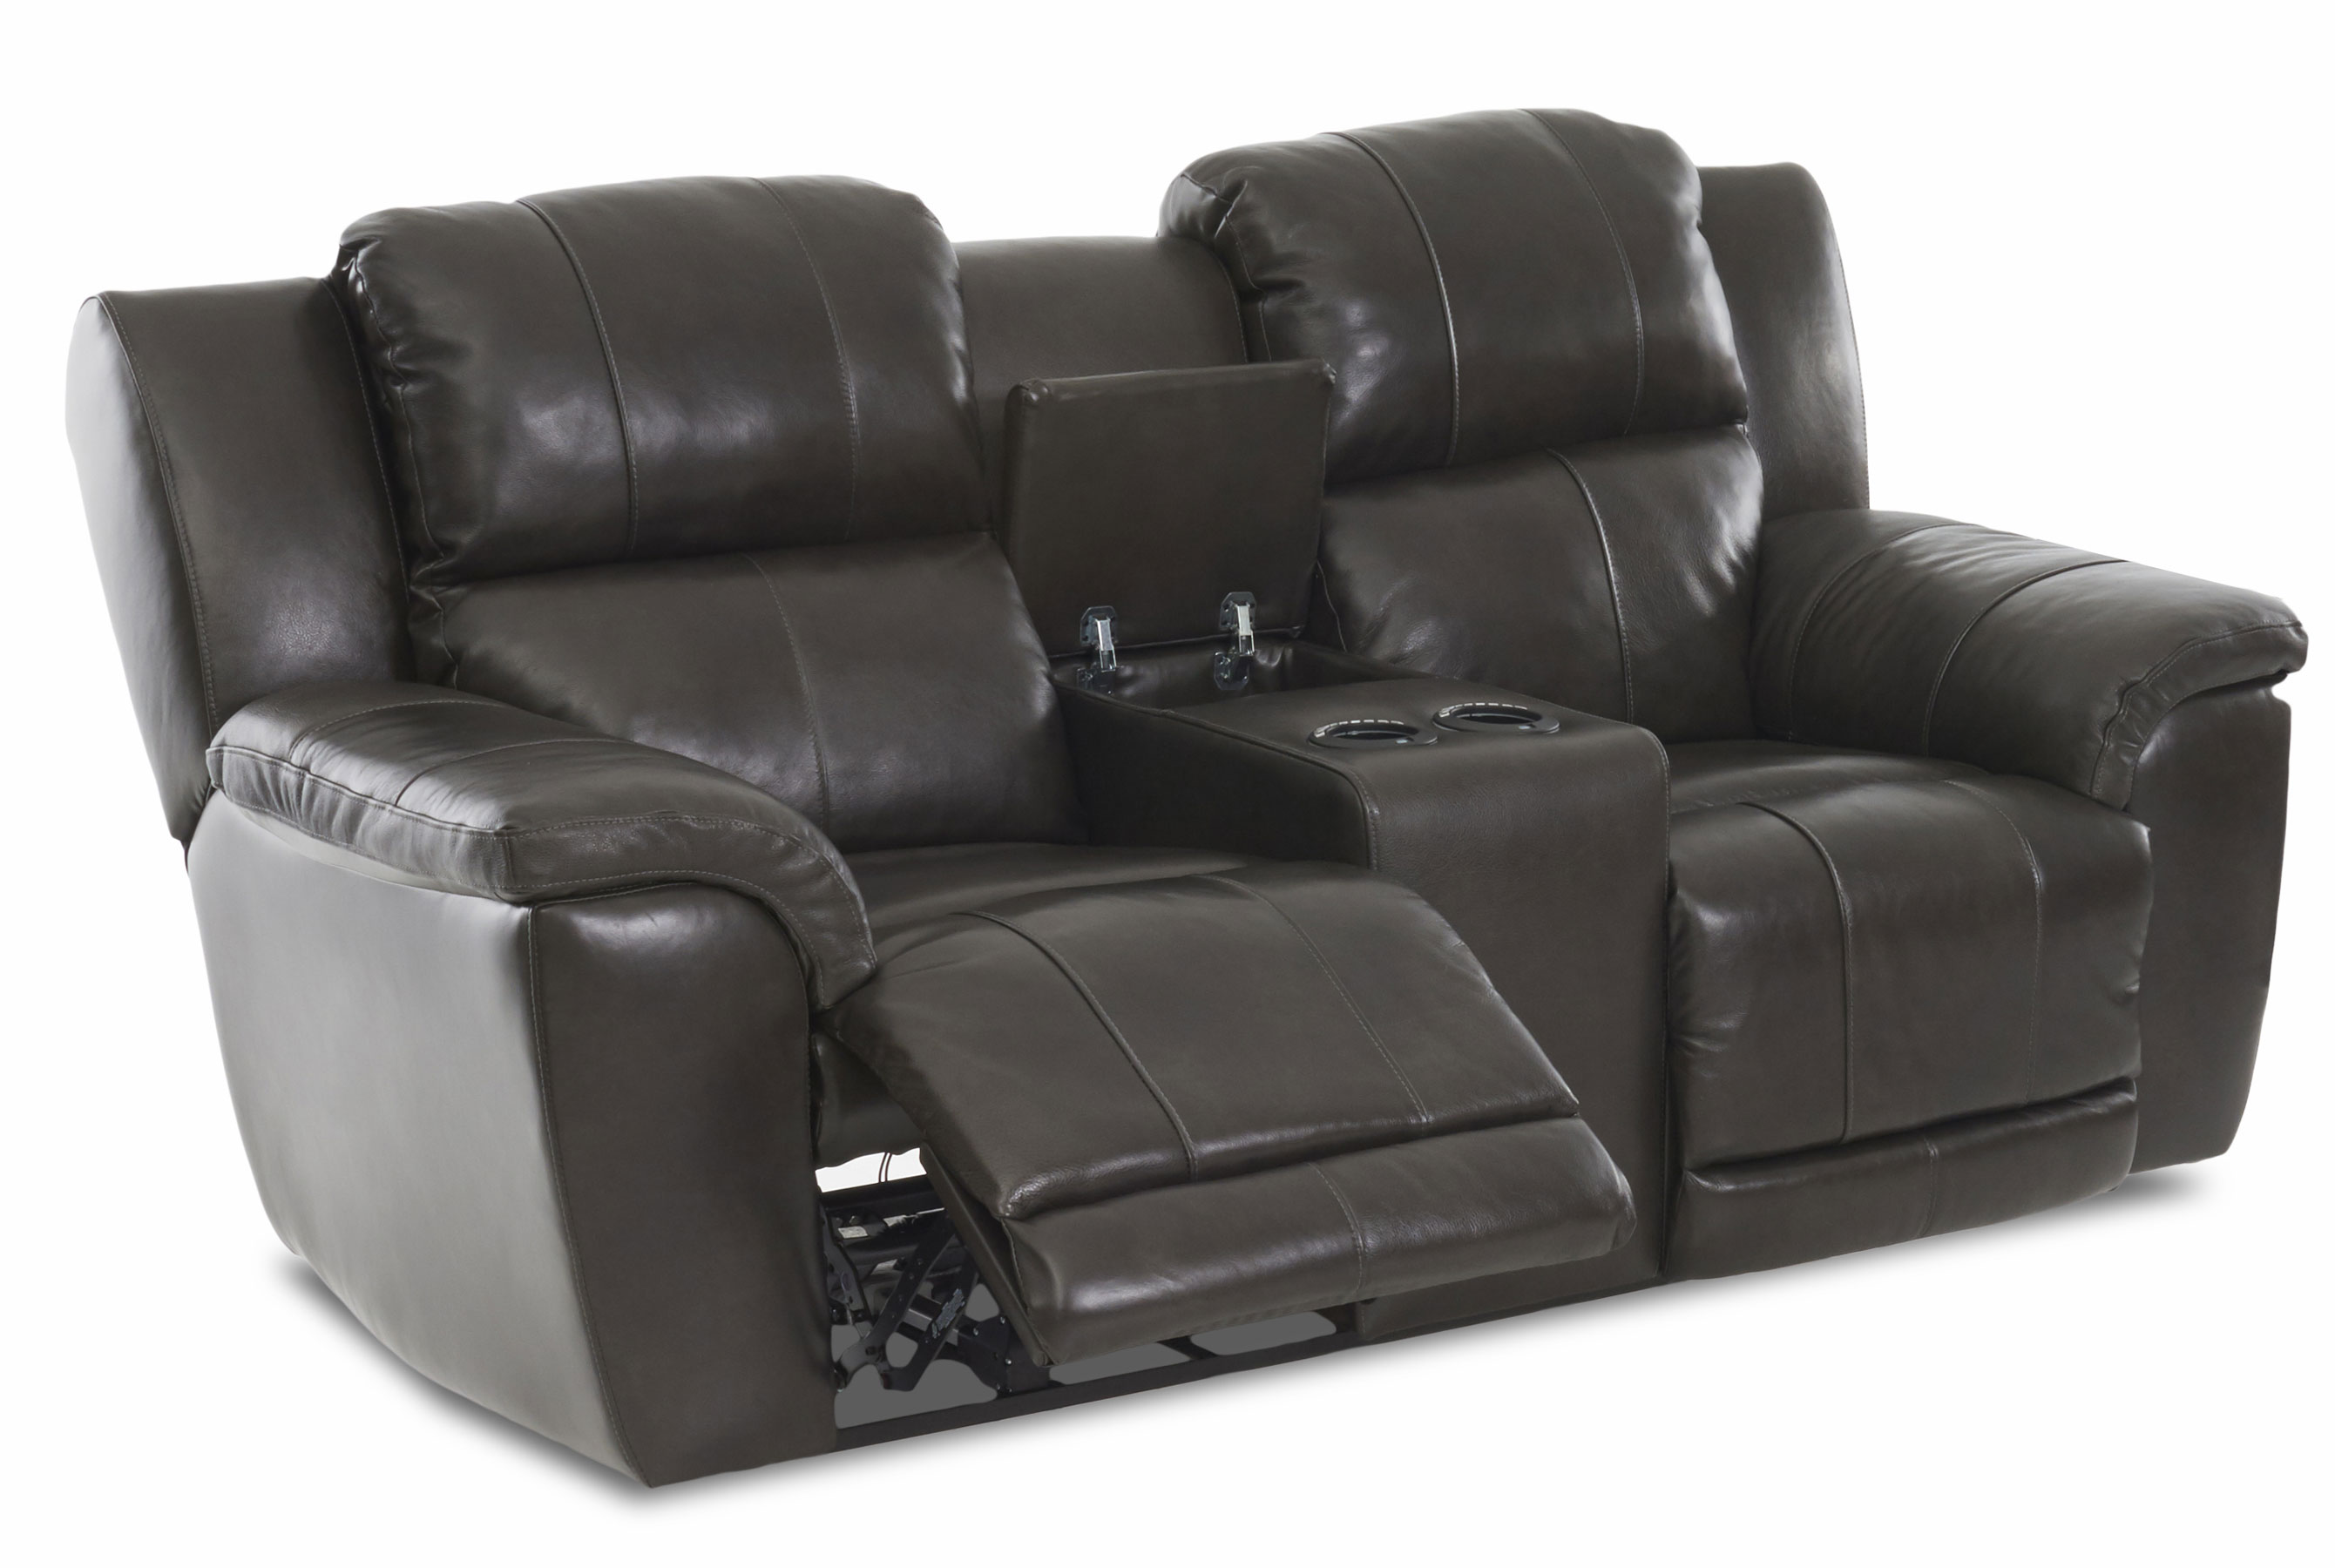 Klaussner Upholstery Furniture Sofas And Sectionals